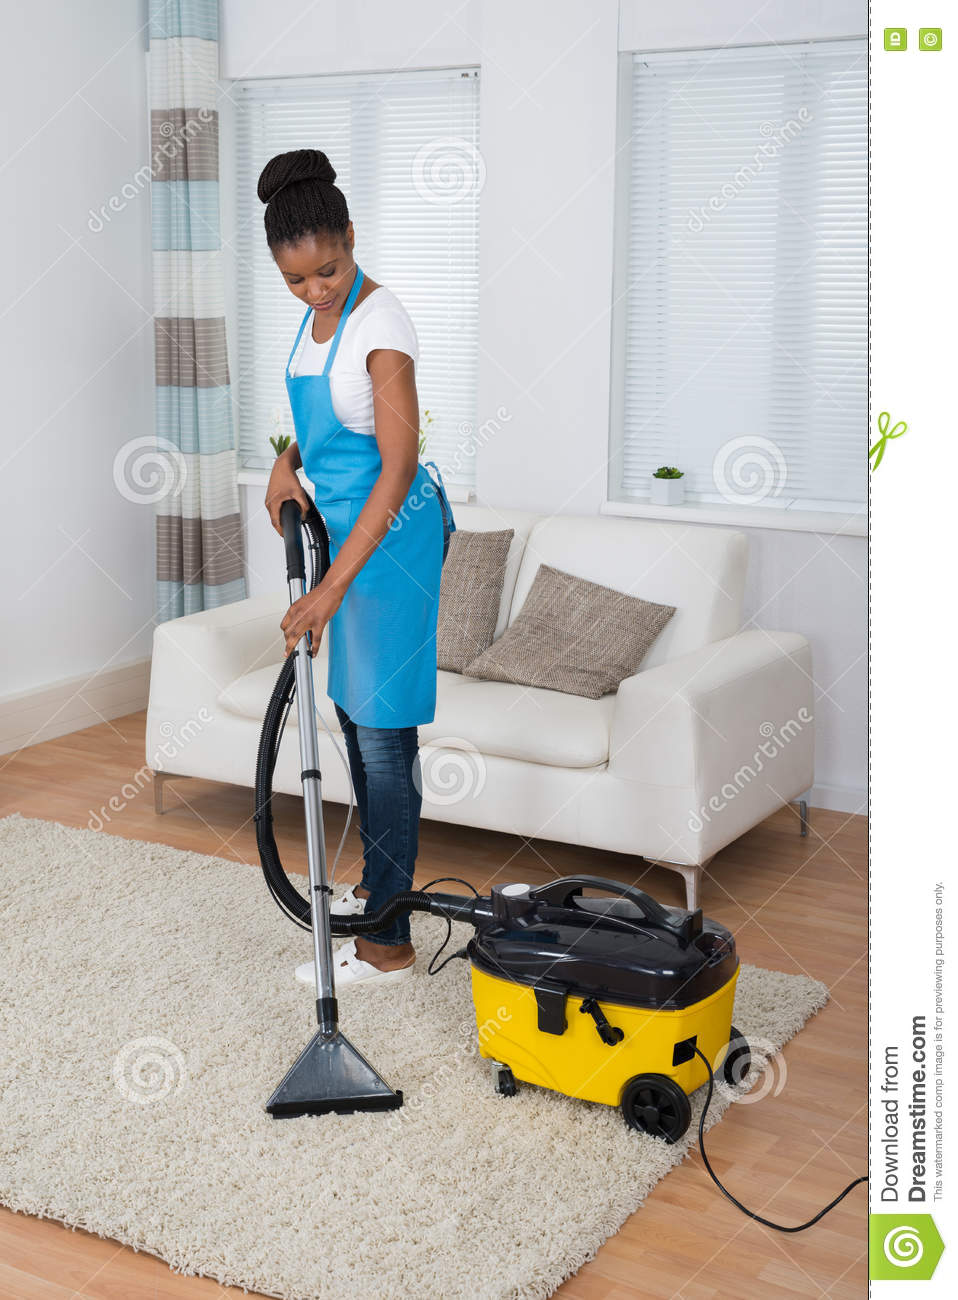 Woman Cleaning Carpet With Vacuum Cleaner Stock Photo